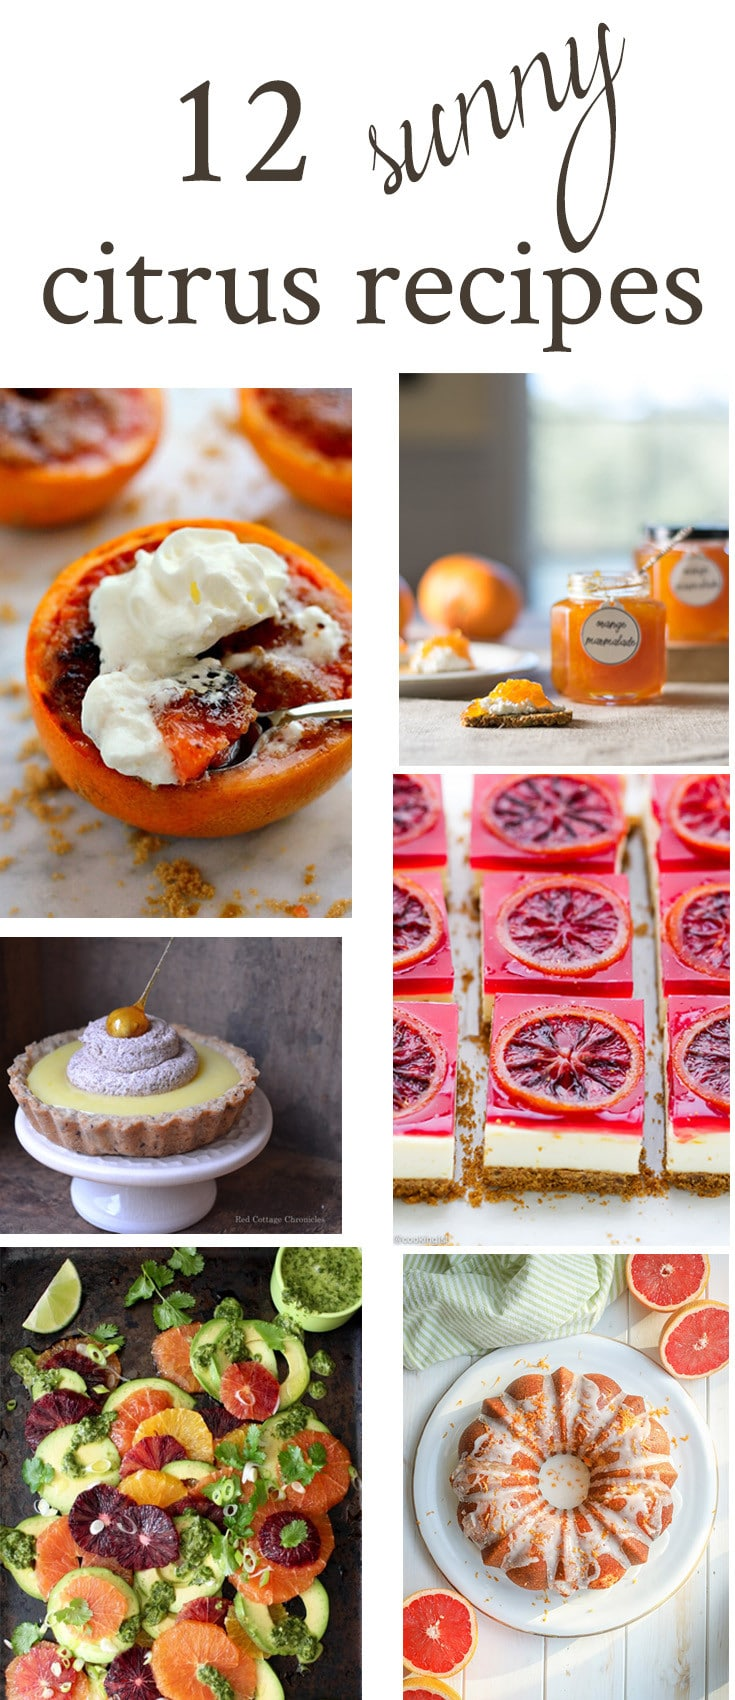 A curation of 12 sunny and delicious citrus recipes featuring oranges, lemons, grapefruits and limes in soups, salads, breakfast and dessert items.